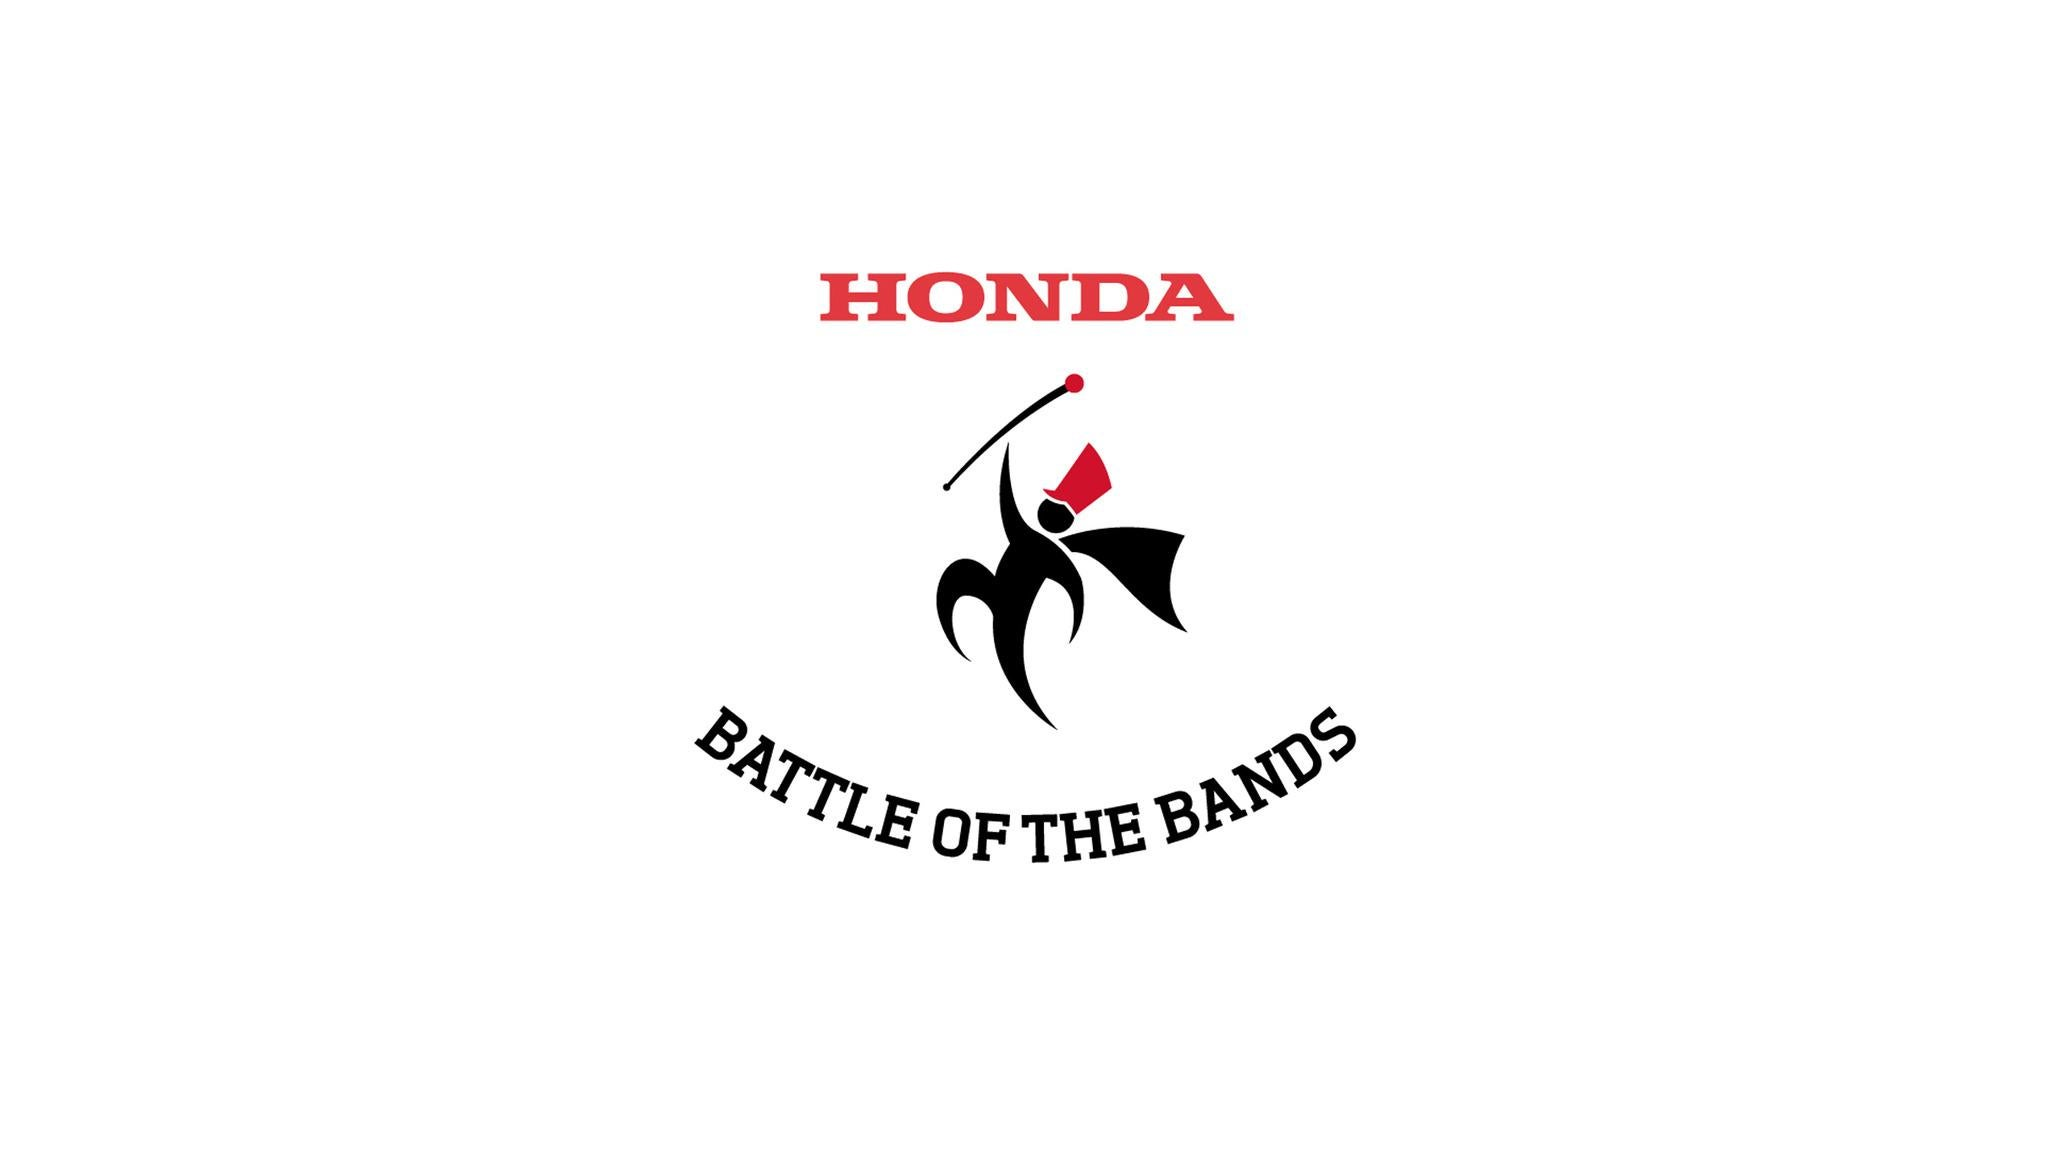 Honda Battle of the Bands at Georgia Dome